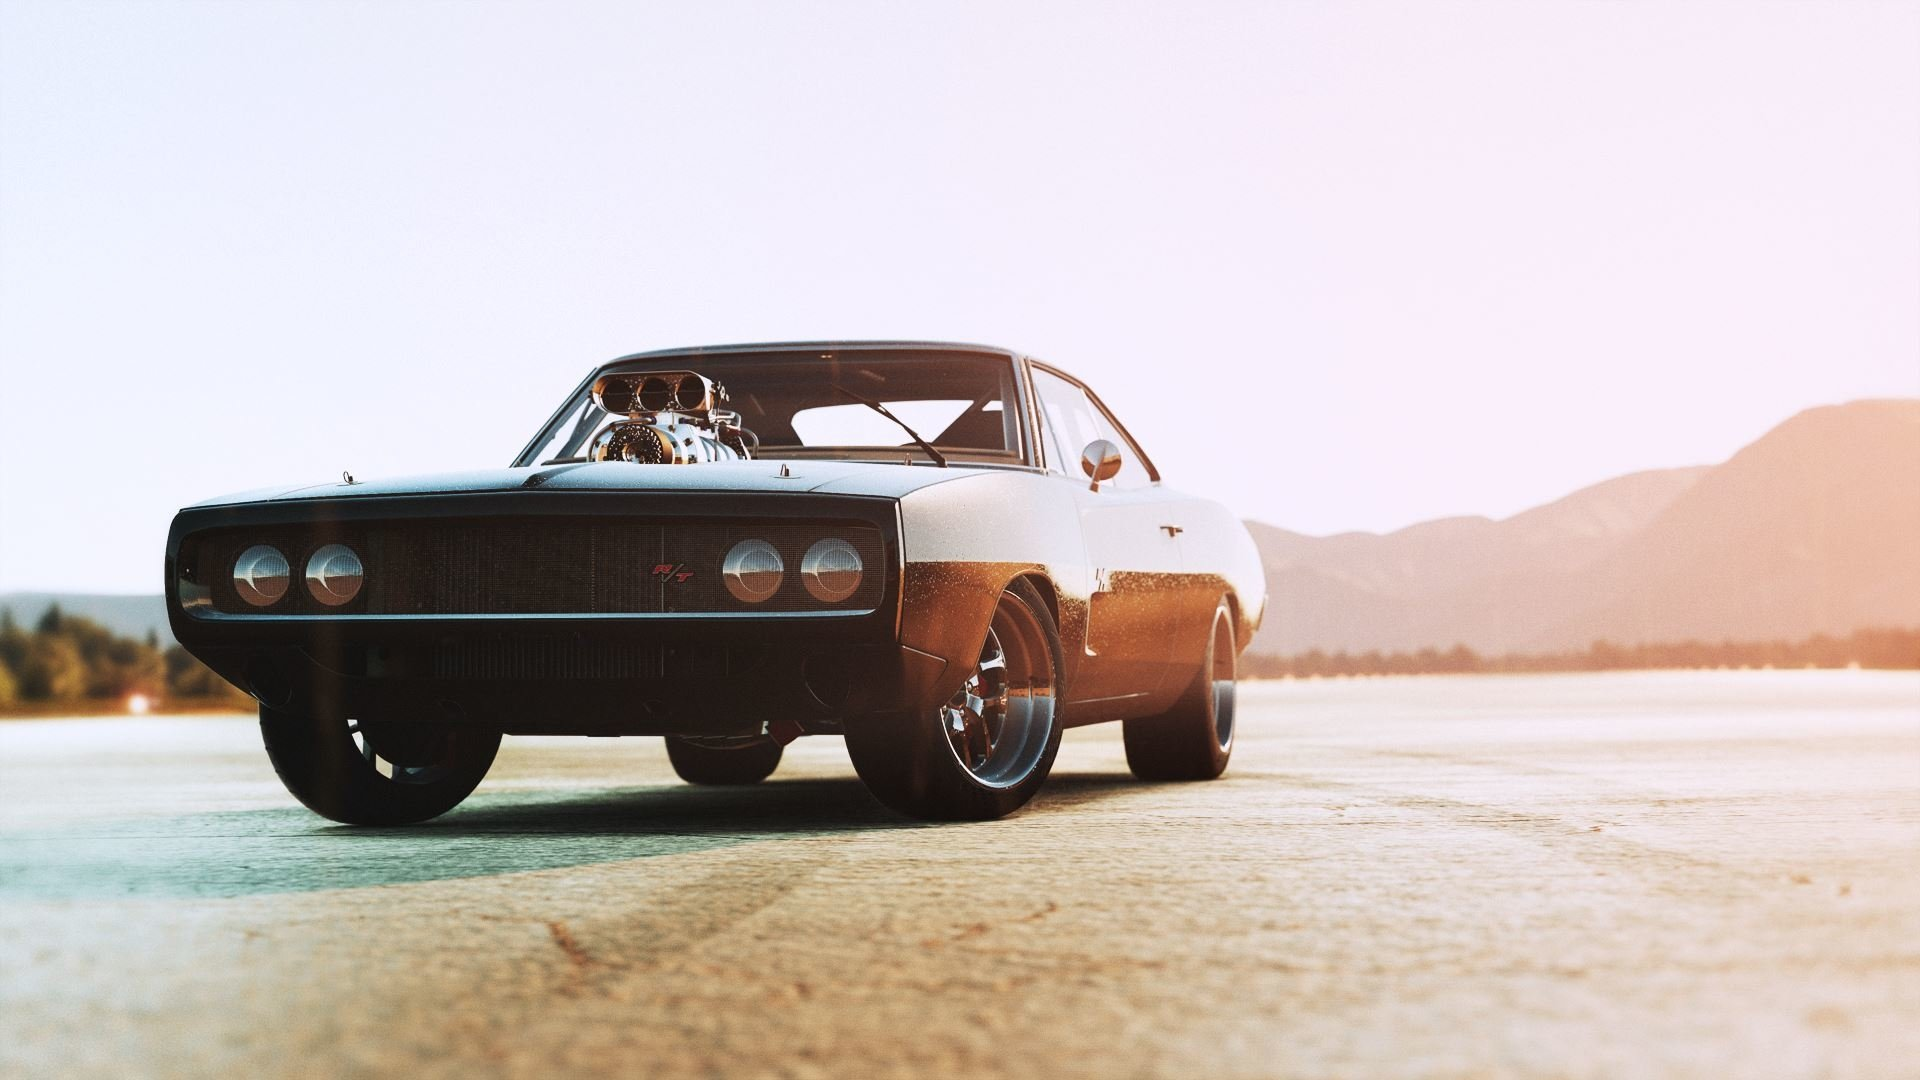 1970 Dodge Charger R/T Fast and Furious Edition Full HD ...